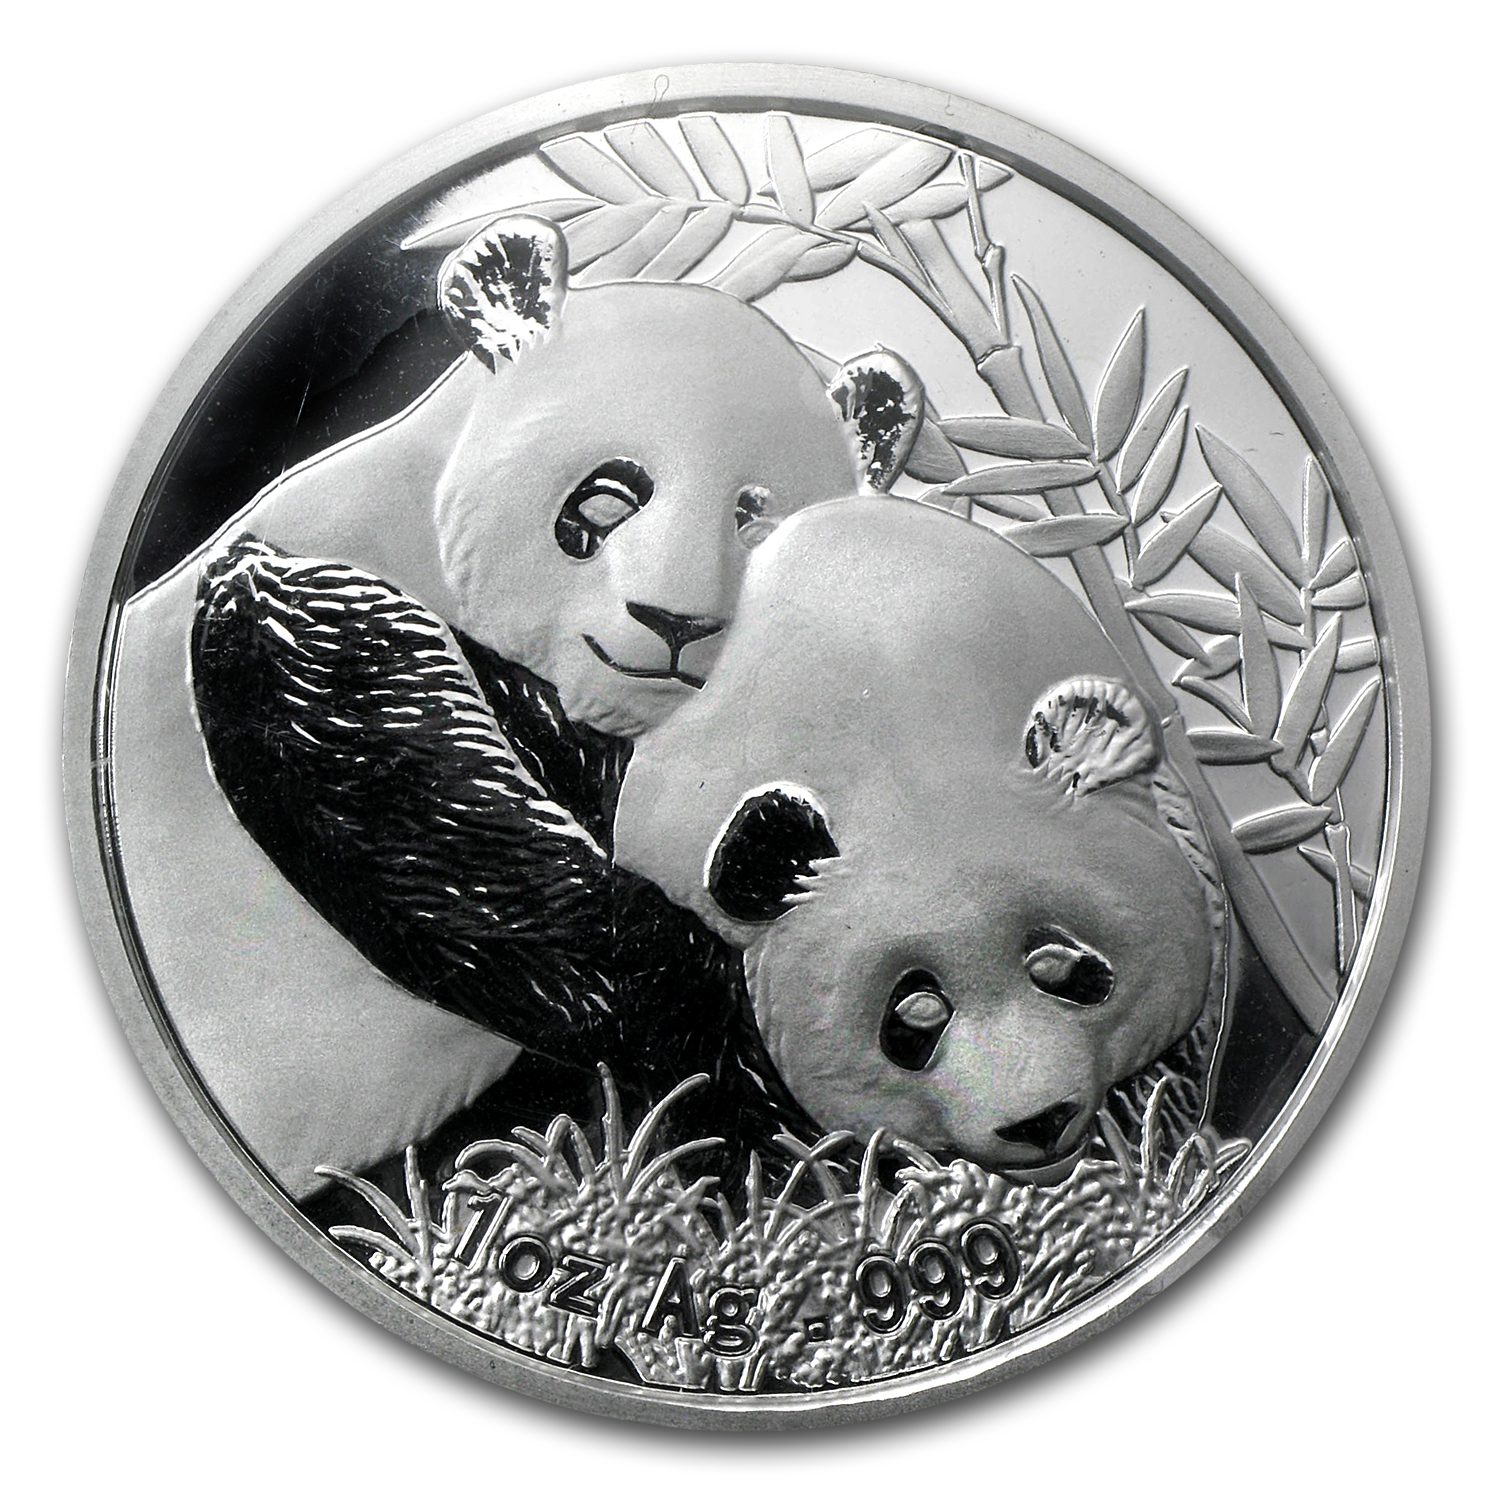 2012 1 oz Silver Chinese Panda Singapore Coin Fair (w/Box & COA)